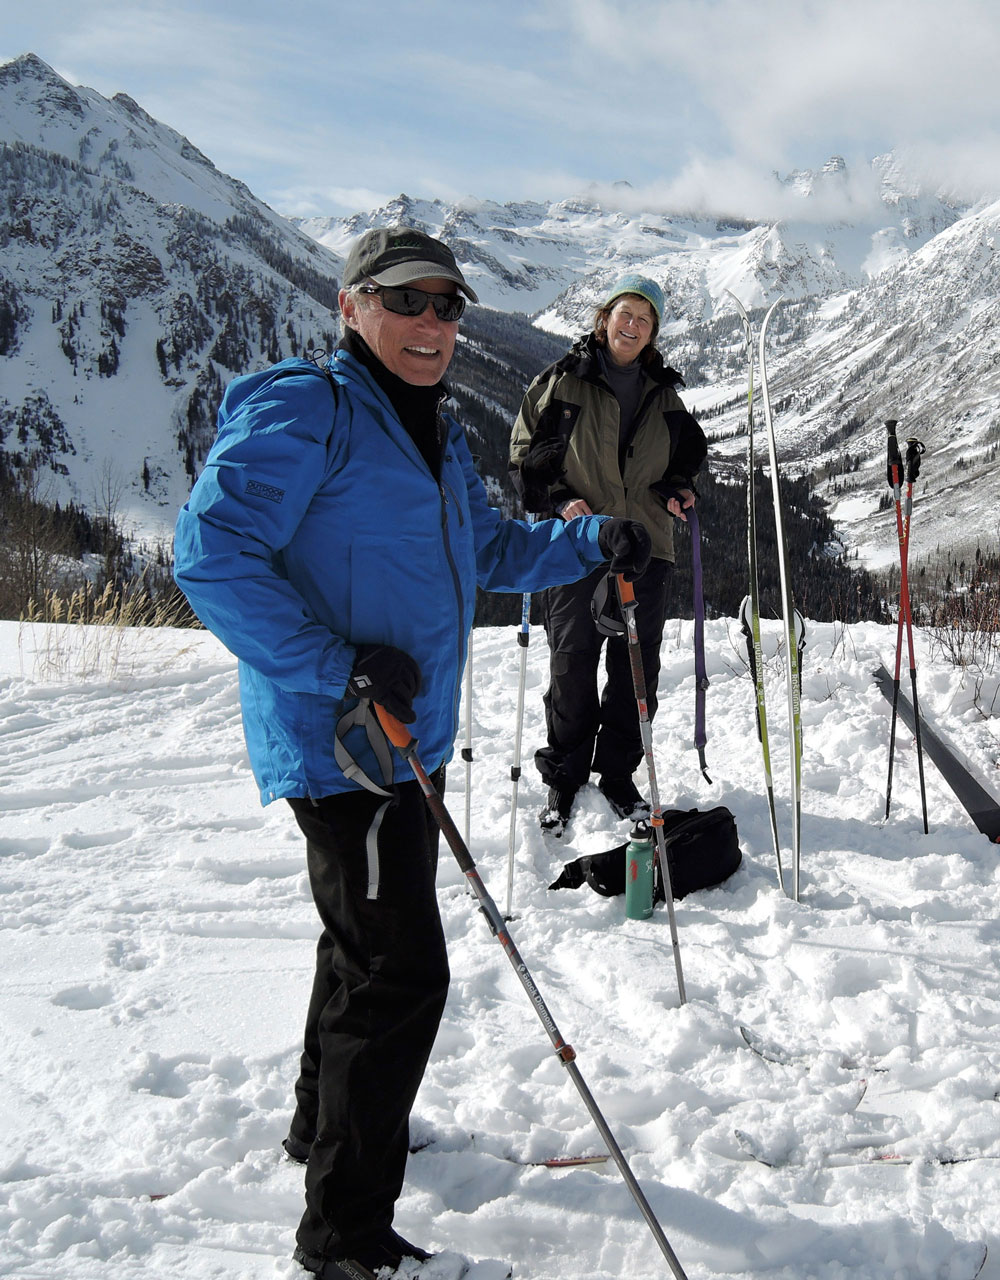 Peter Waller and Shelley Kaup enjoy ski touring above Ashcroft on a hut trip with their spouses and friends.